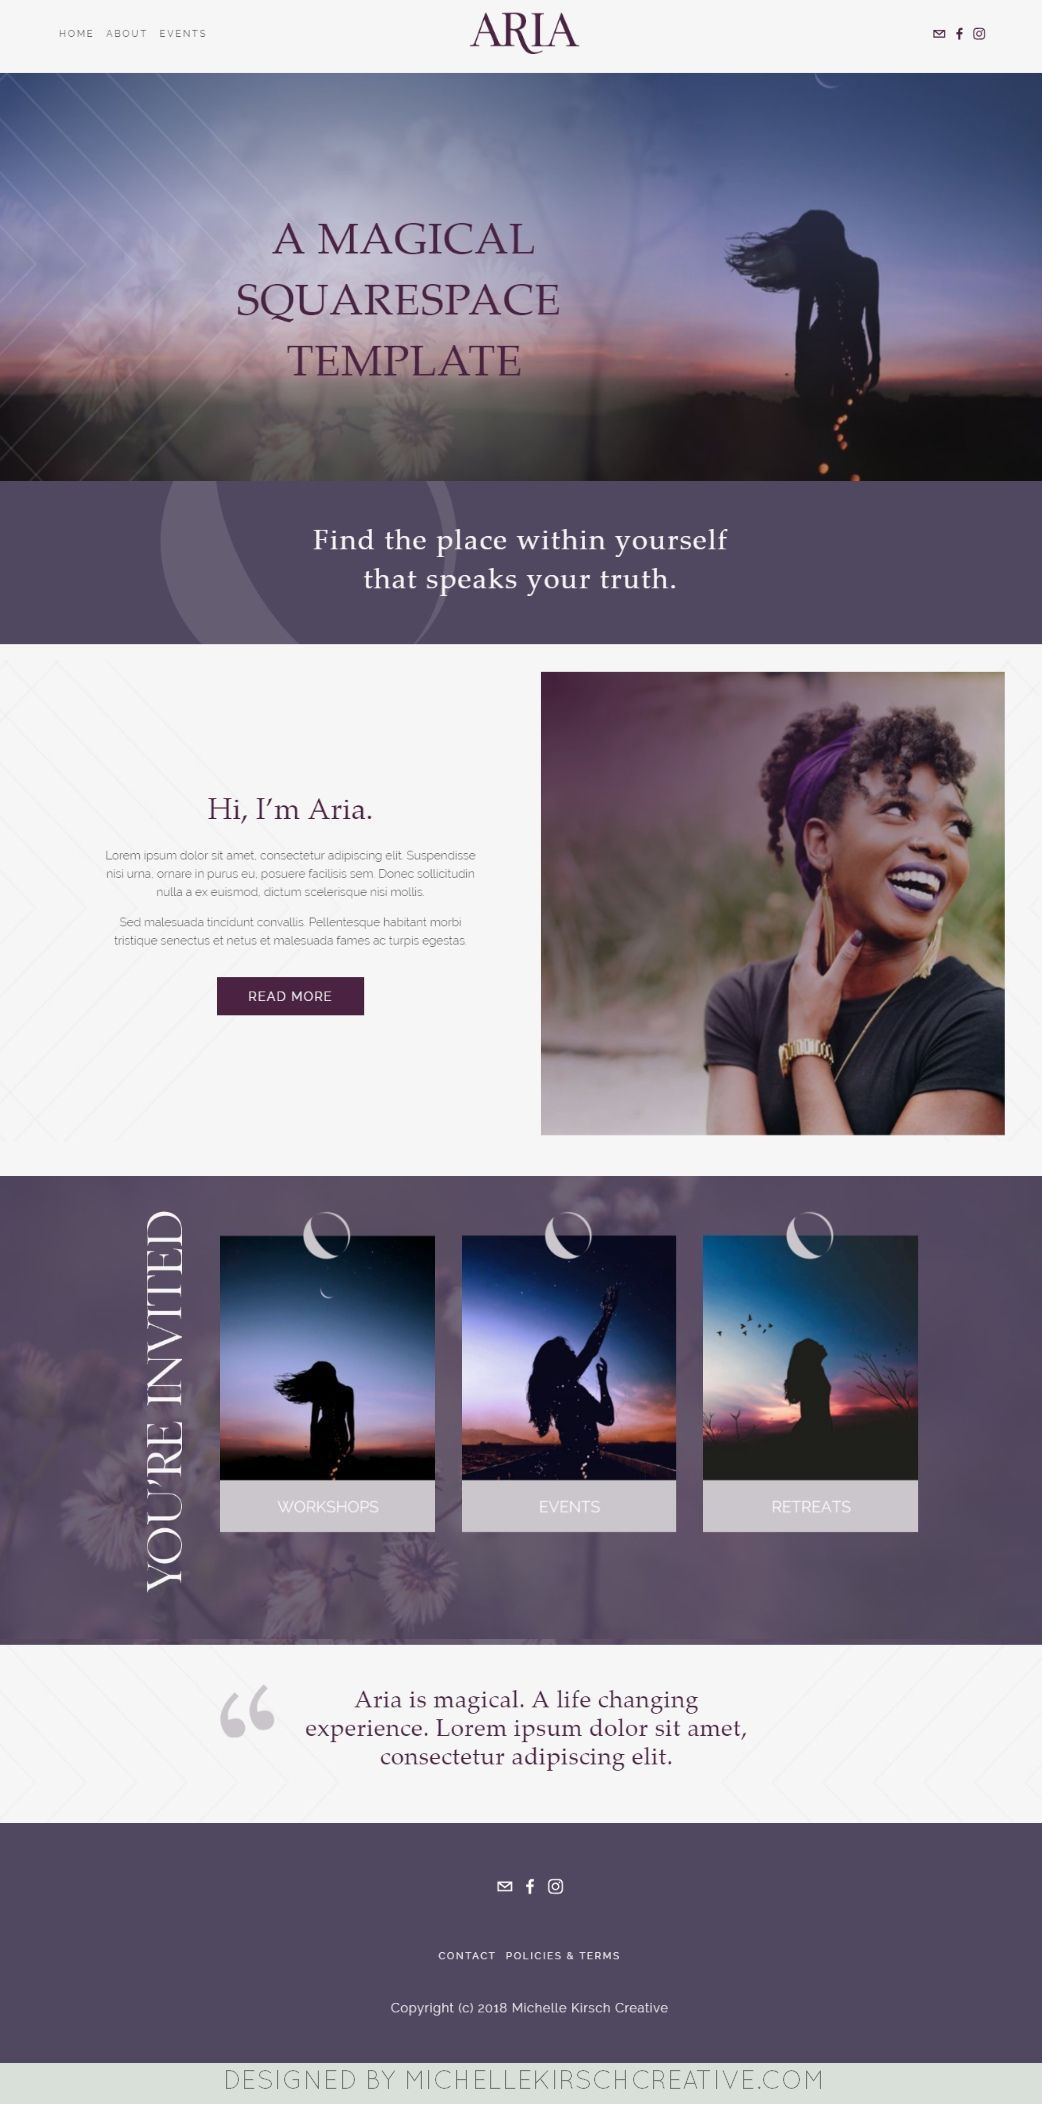 Homepage Layout Design On The Brine Template Squarespace Homepagedesign Websiteinspiration Mini Blog Design Inspiration Web Design Color Homepage Design